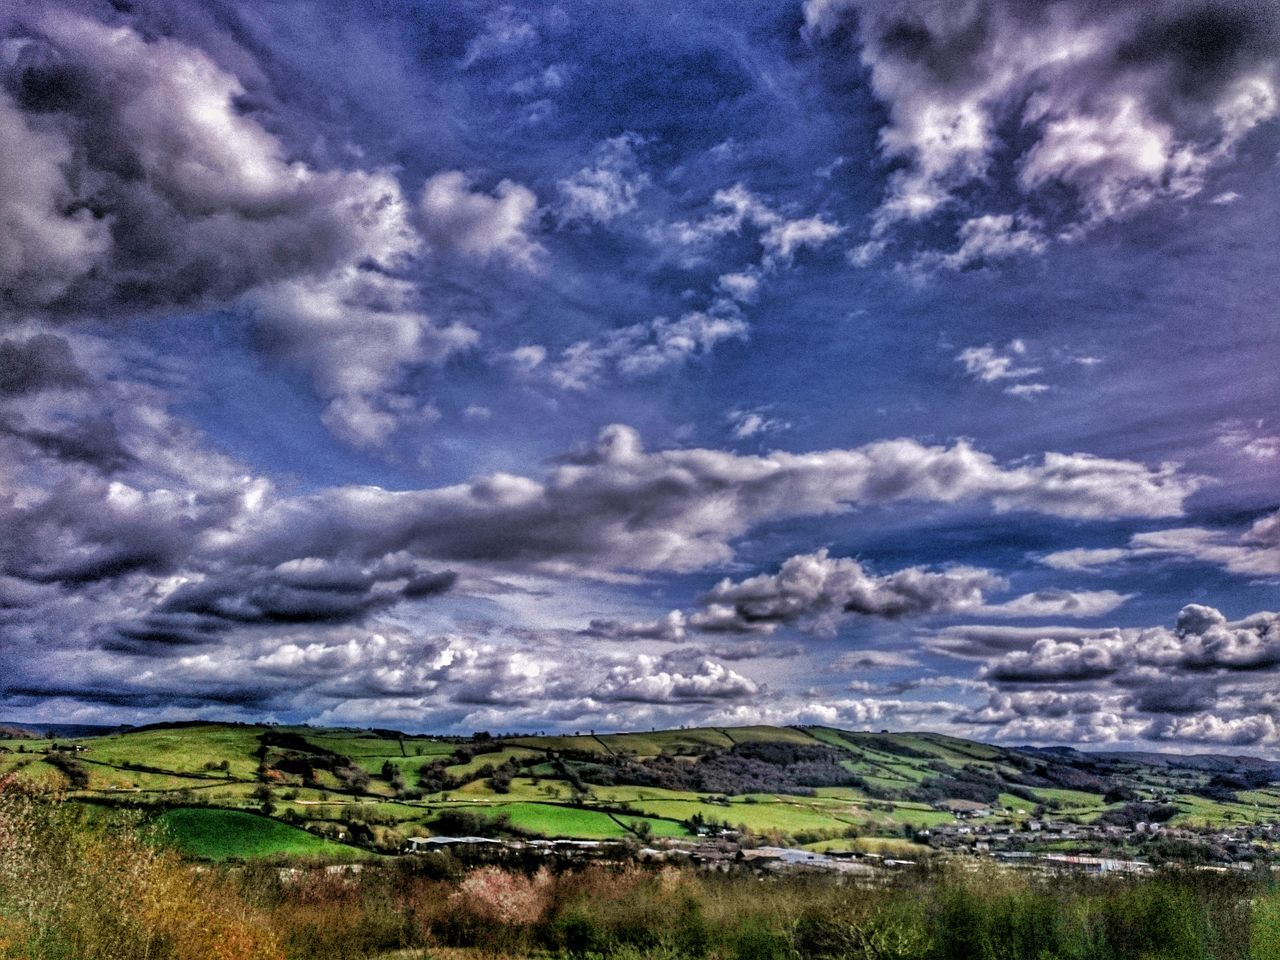 Wales You Beauty Sky Porn Sky And Clouds Skyporn Clouds And Sky Cloudporn Cloud - Sky Views Wales Powys Check This Out Wow Shot Distant View Time To Reflect Meditation Place Wales❤ Wales UK Sky_collection Skylovers Sky_collection Cloud Porn Best Shots EyeEm Snapseed_HDR Bestskylineever The Great Outdoors With Adobe